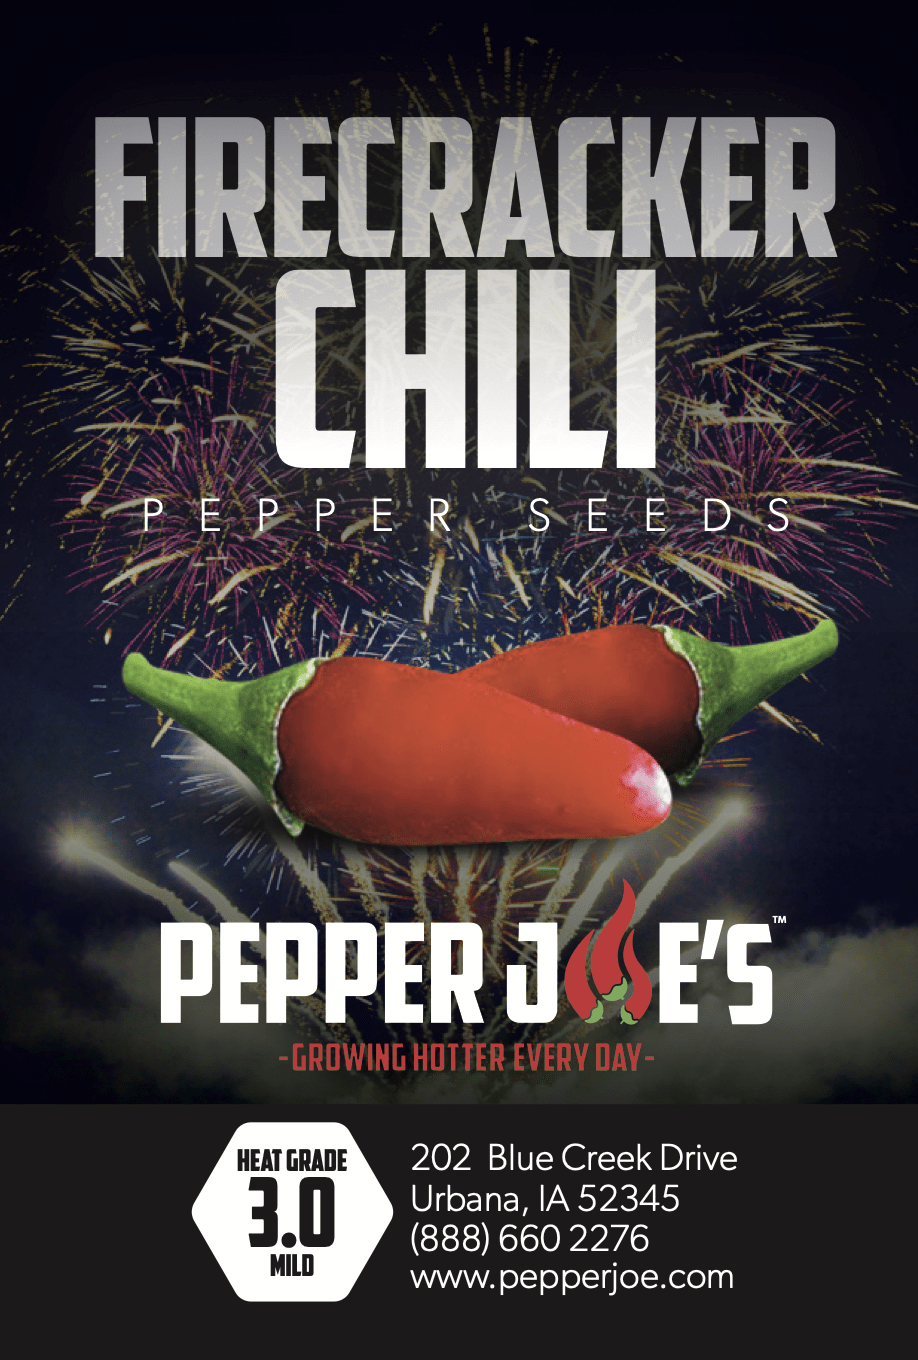 Firecracker Chili Seeds